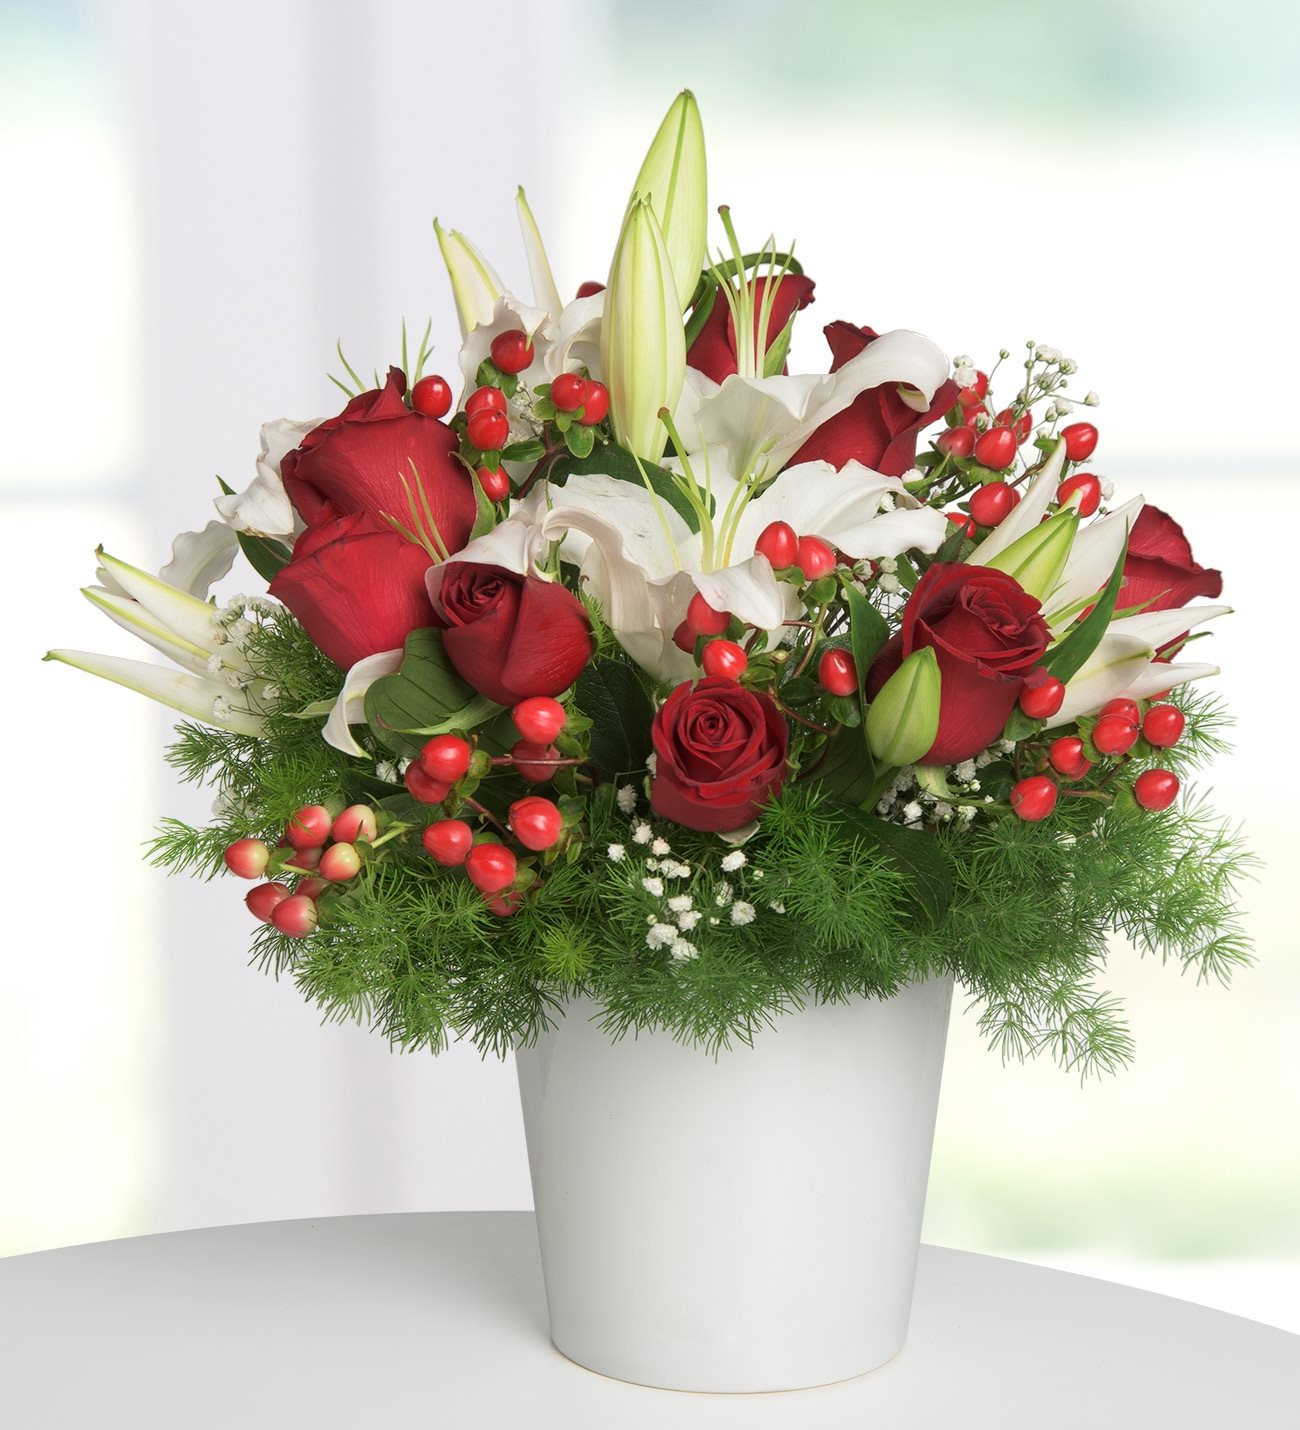 LolaFlora - International Flower Delivery Service